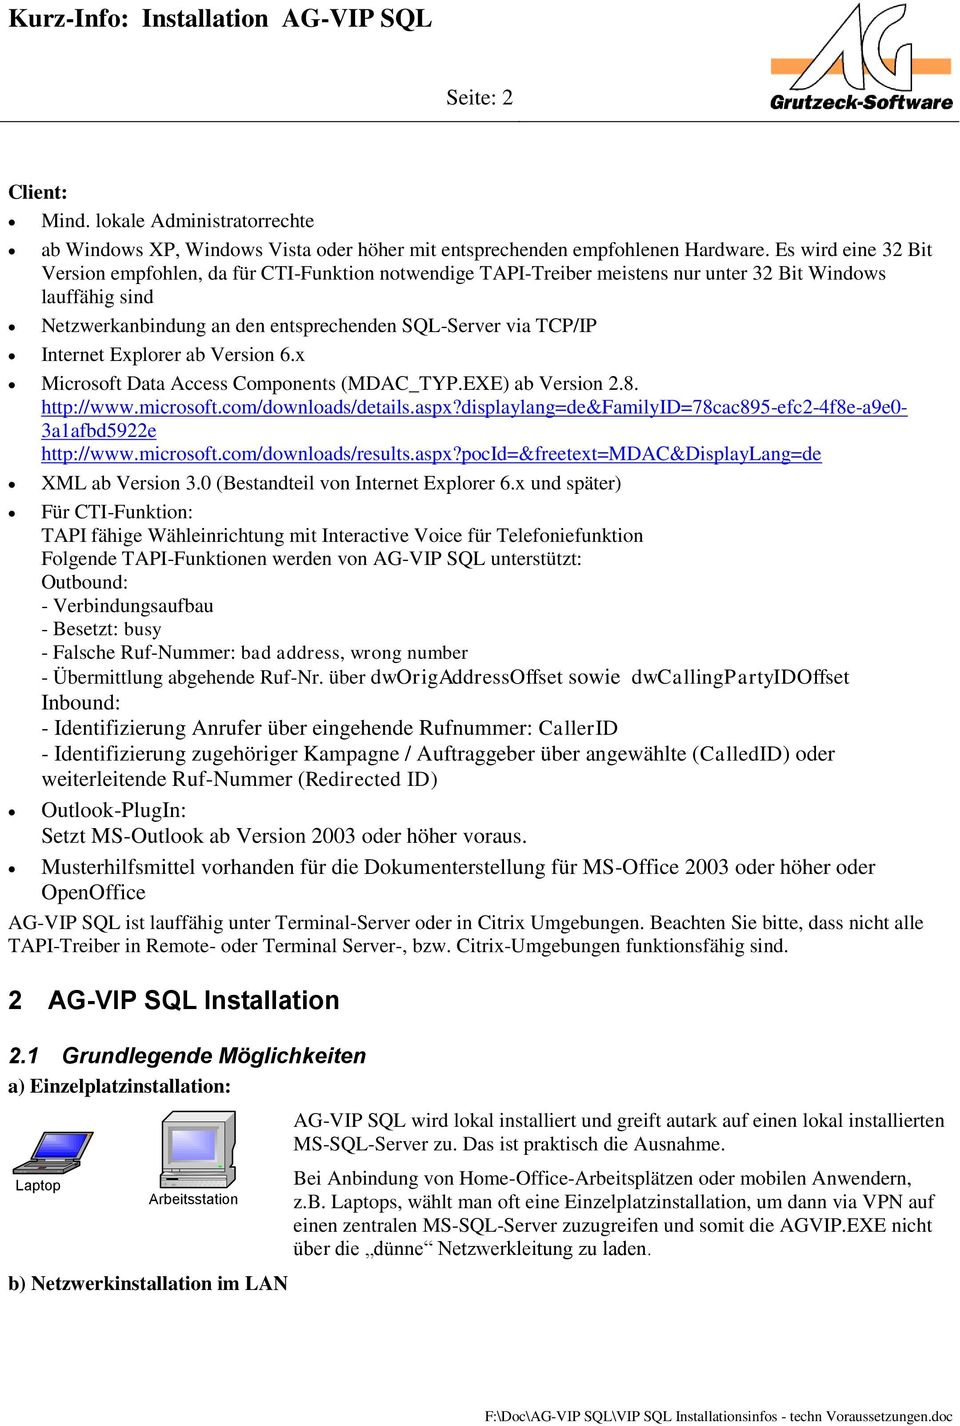 Internet Explorer ab Version 6.x Microsoft Data Access Components (MDAC_TYP.EXE) ab Version 2.8. http://www.microsoft.com/downloads/details.aspx?